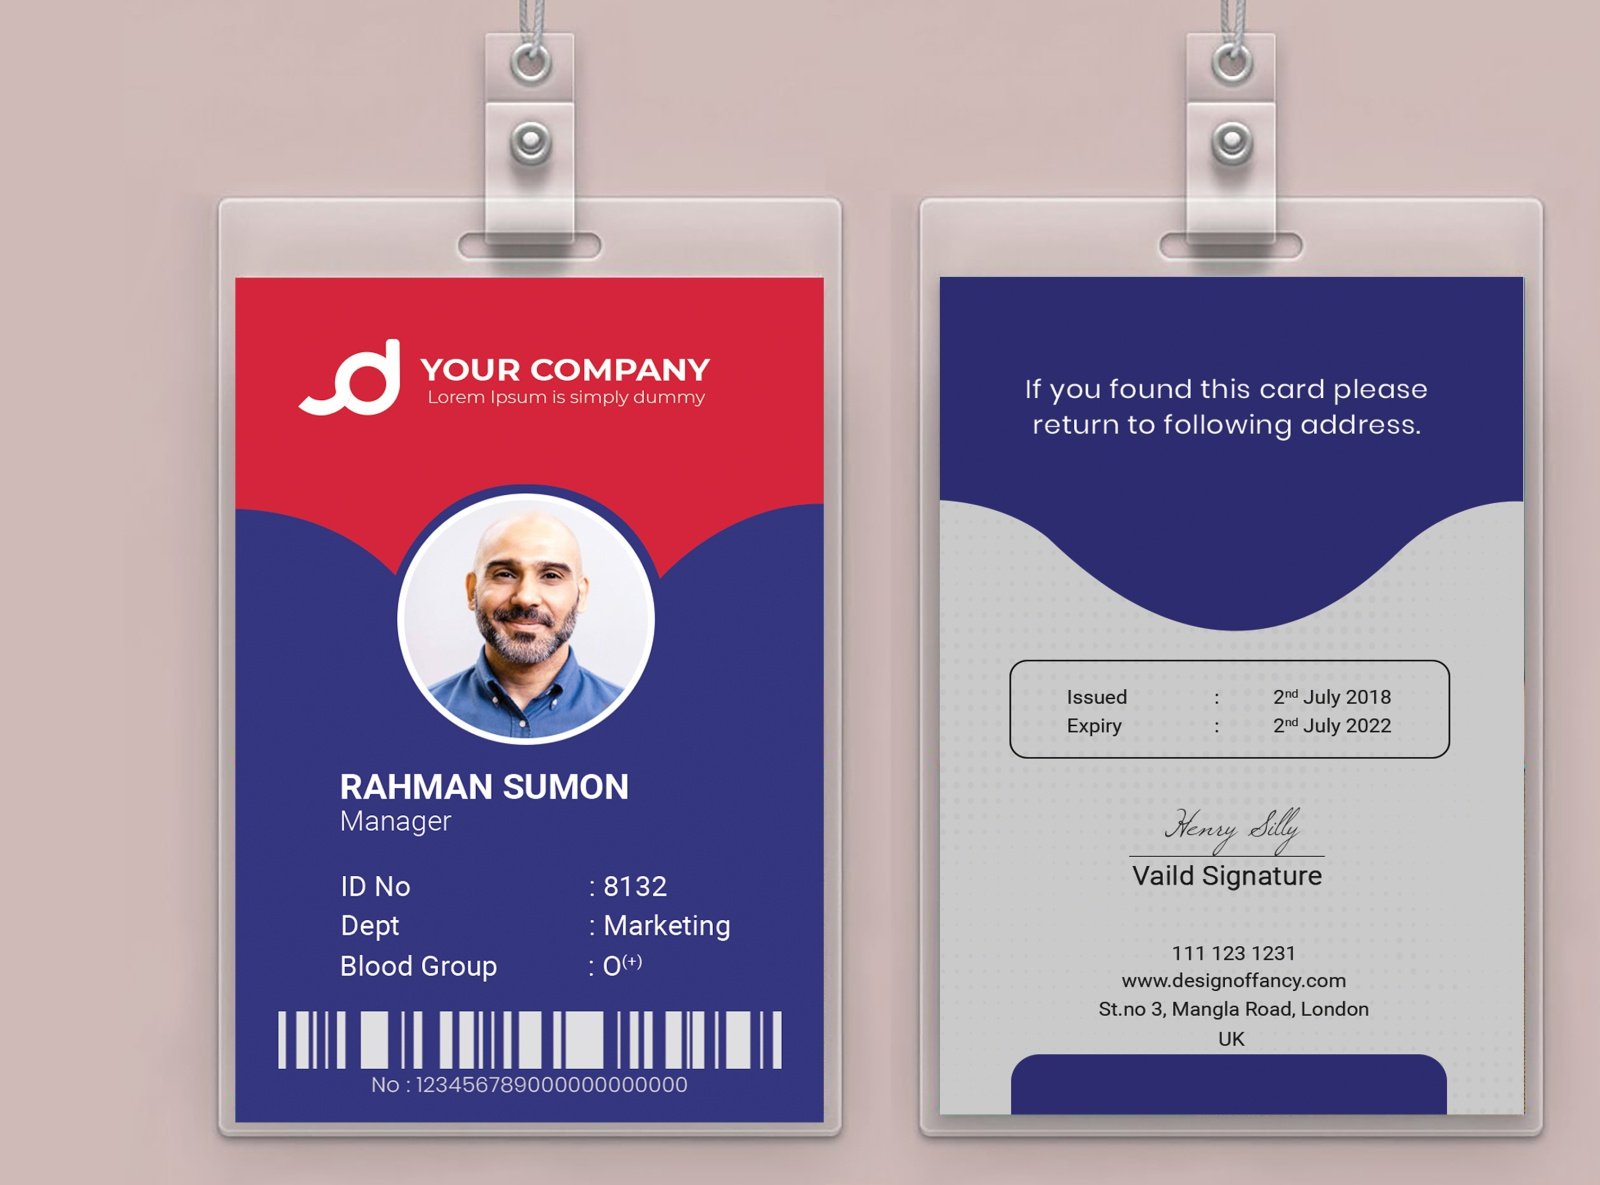 employee id card or student id card by m m rahman sumon on dribbble